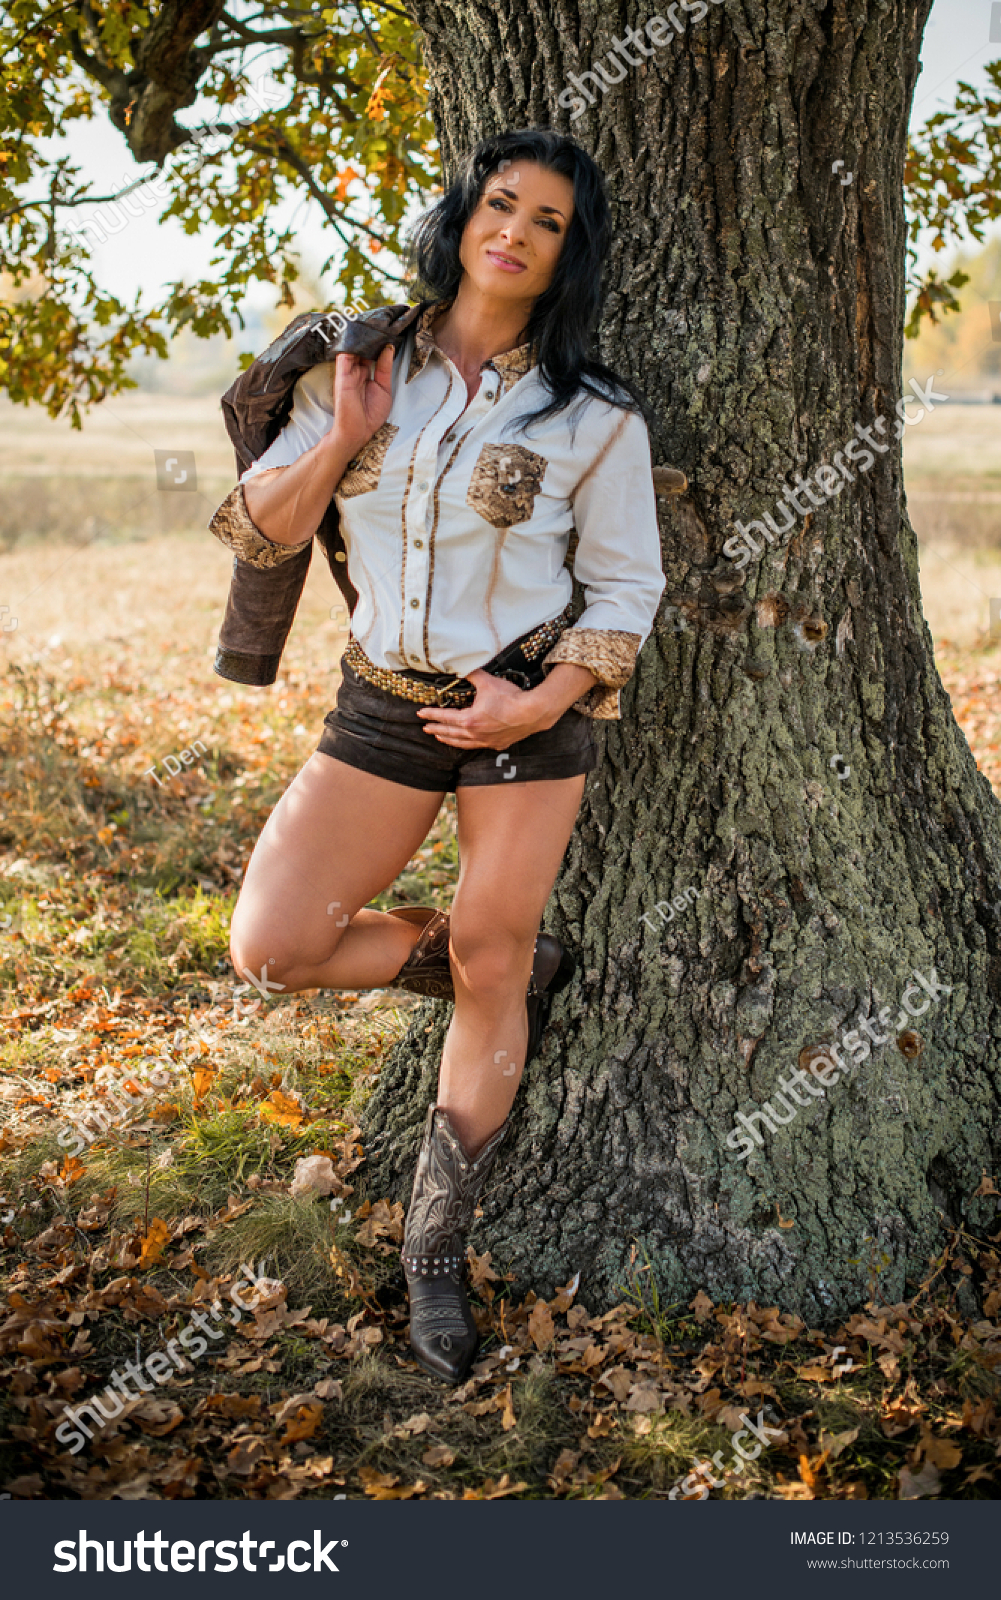 American mature fit woman in country style at nature. Fashionable american  clothes, pretty look